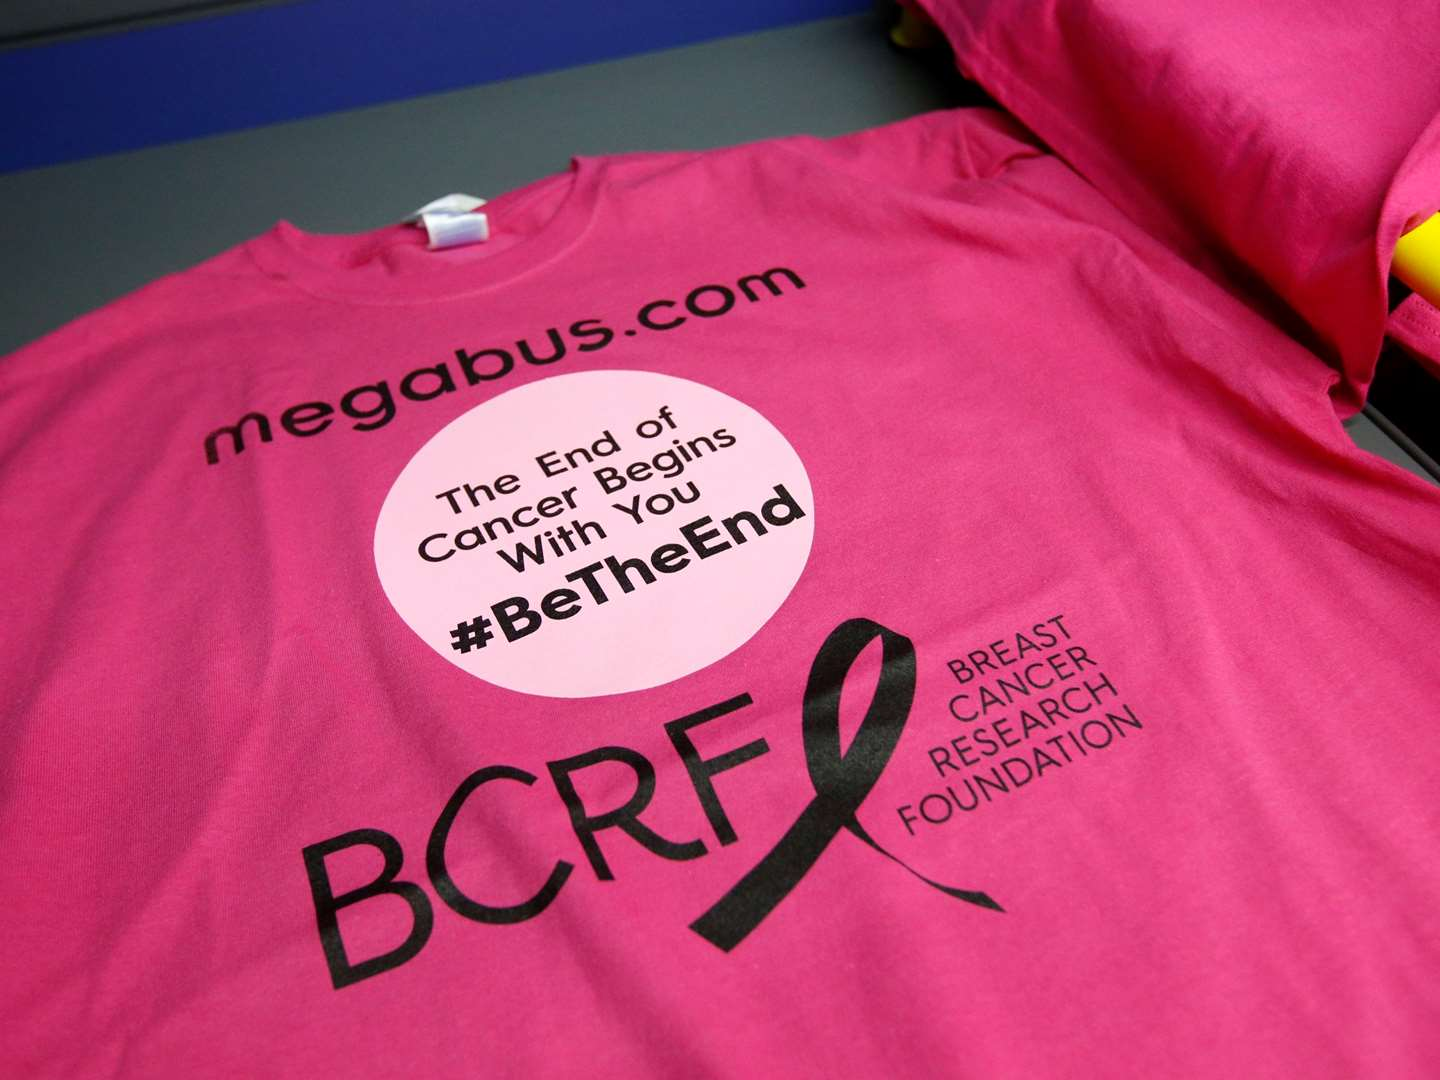 Megabus announces Breast Cancer Awareness Month Contest in support of BCRF